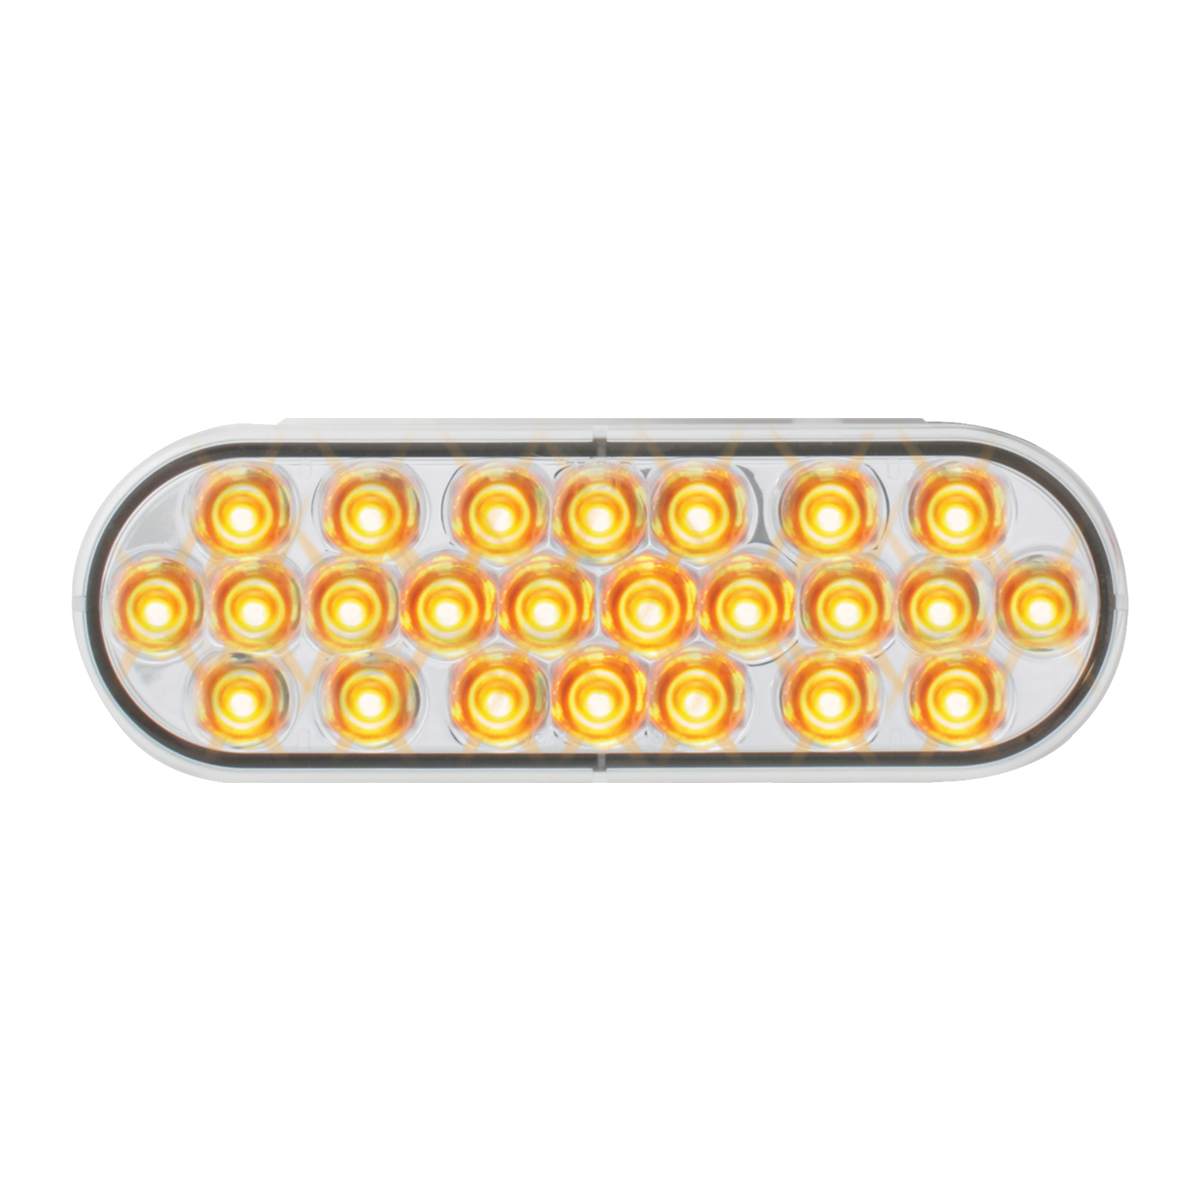 78231 Oval Pearl LED Light in Amber/Clear